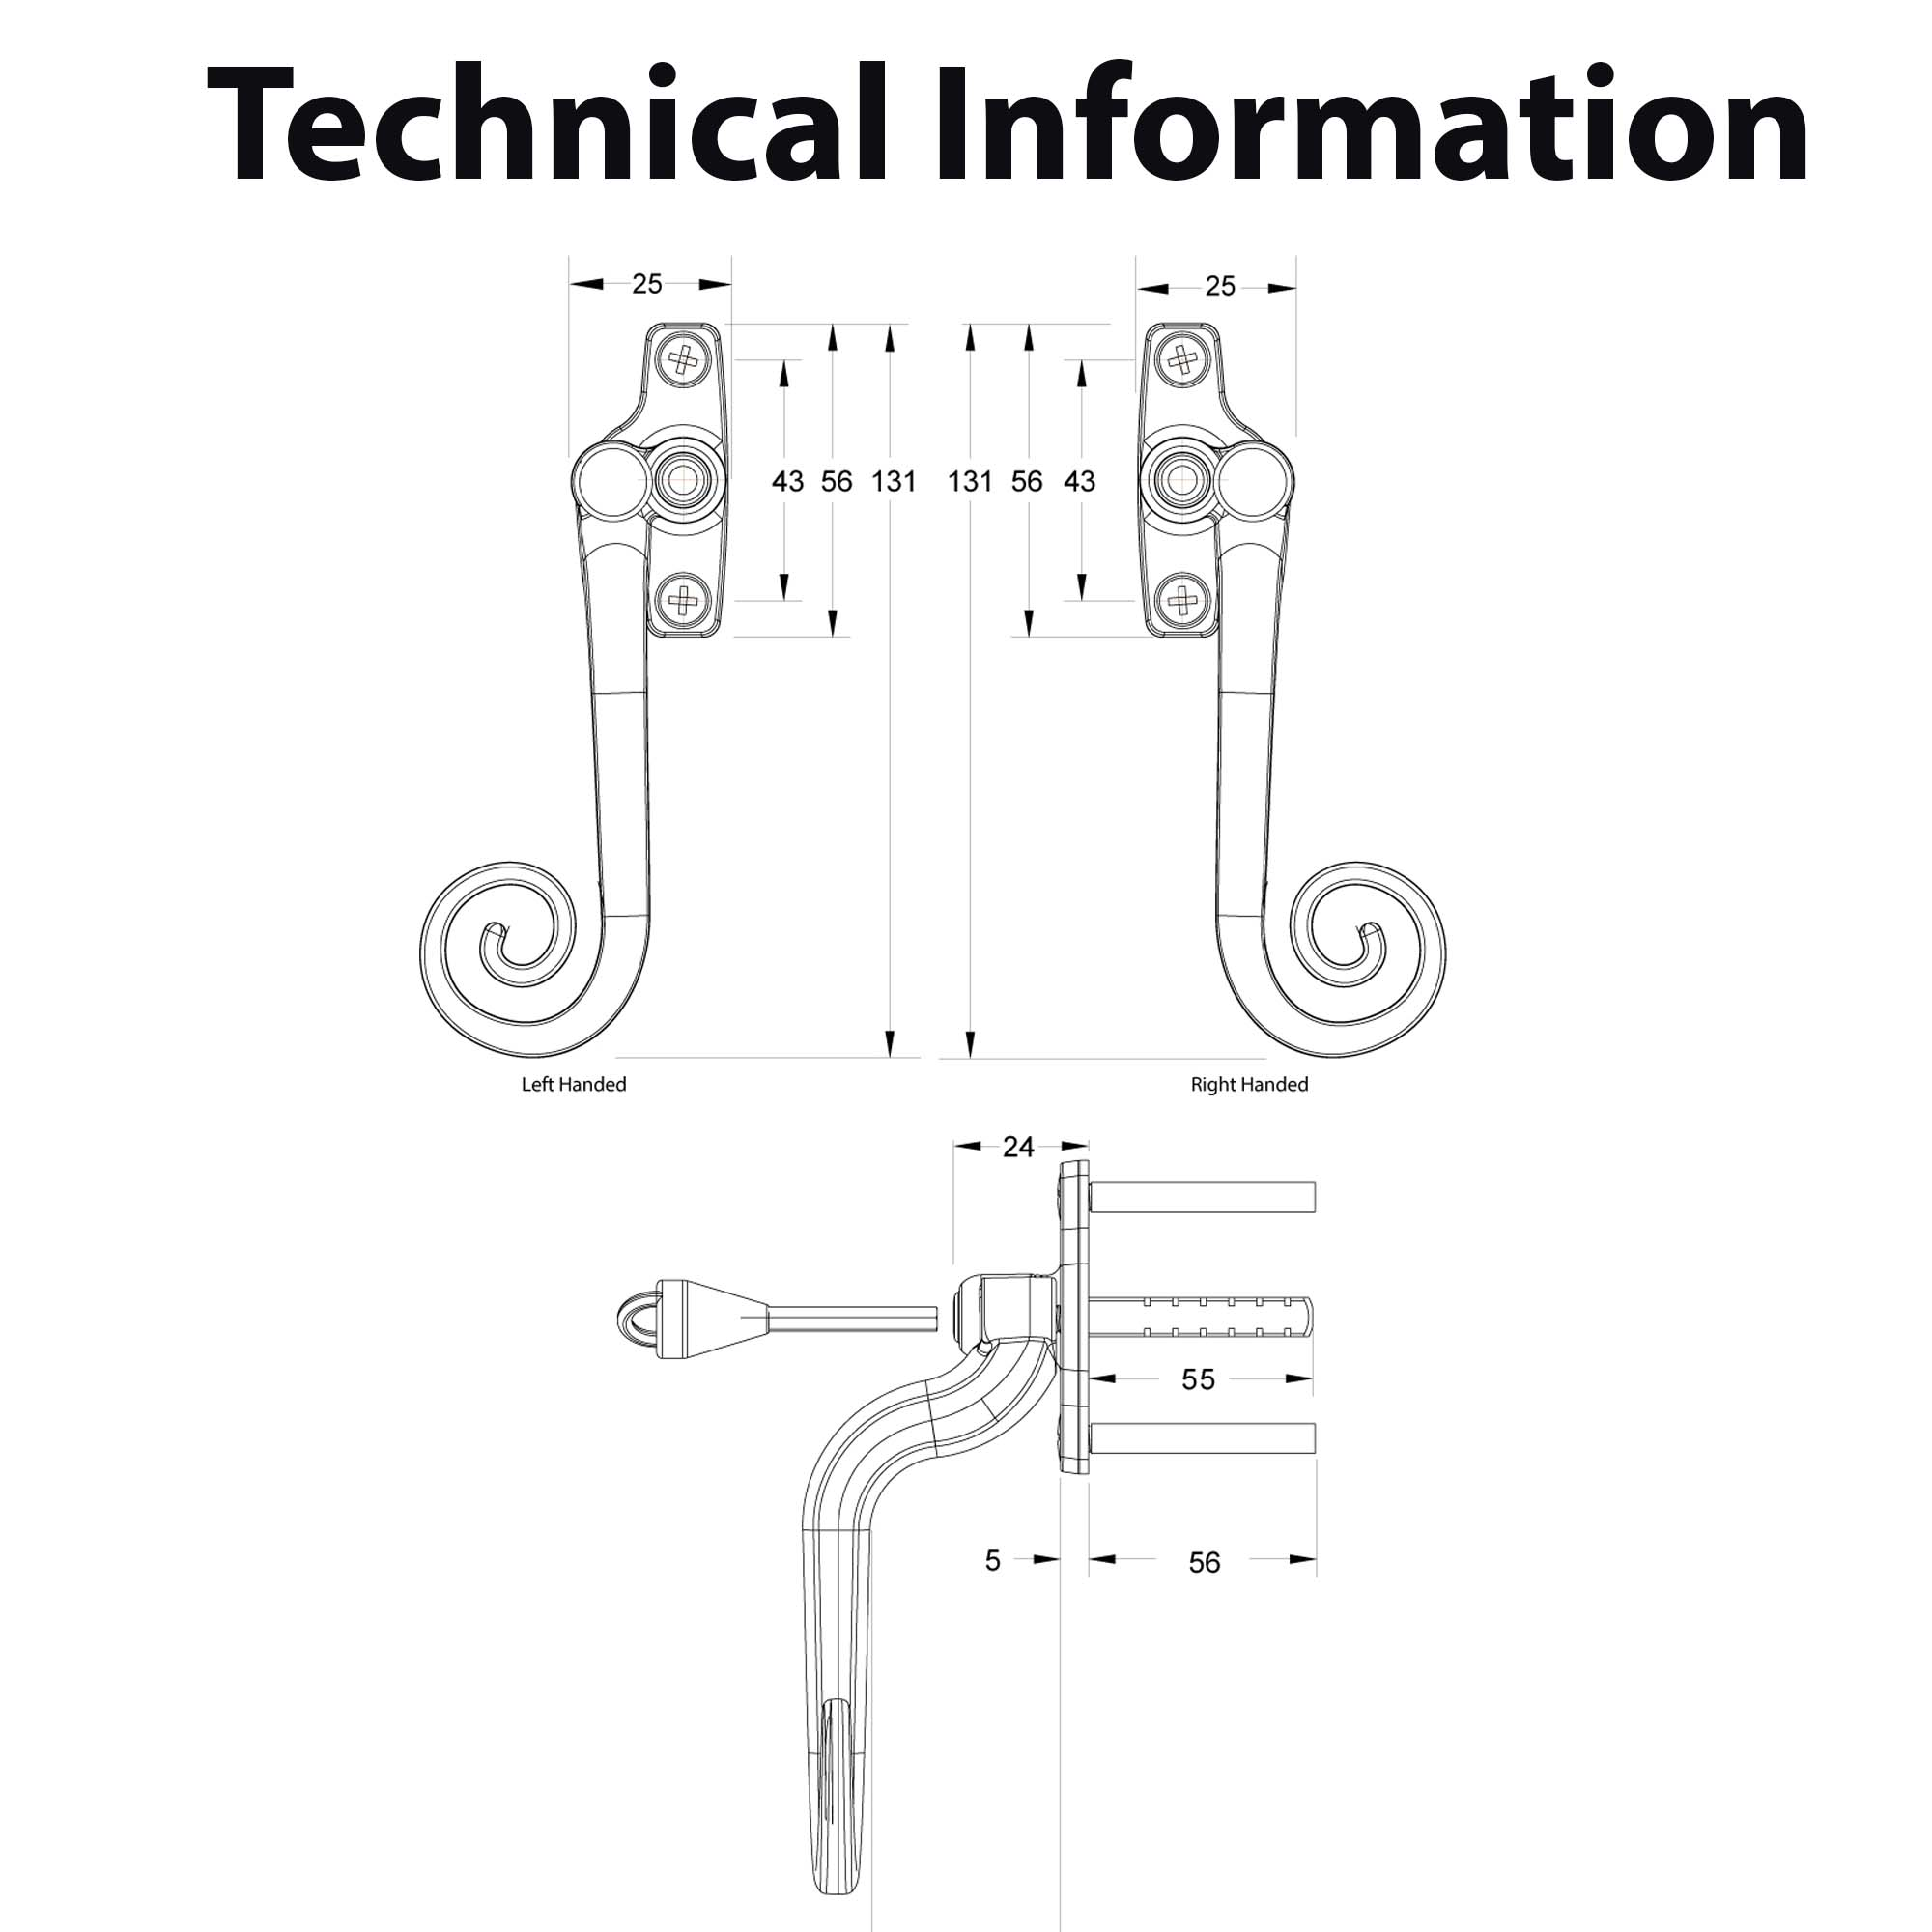 techdetails